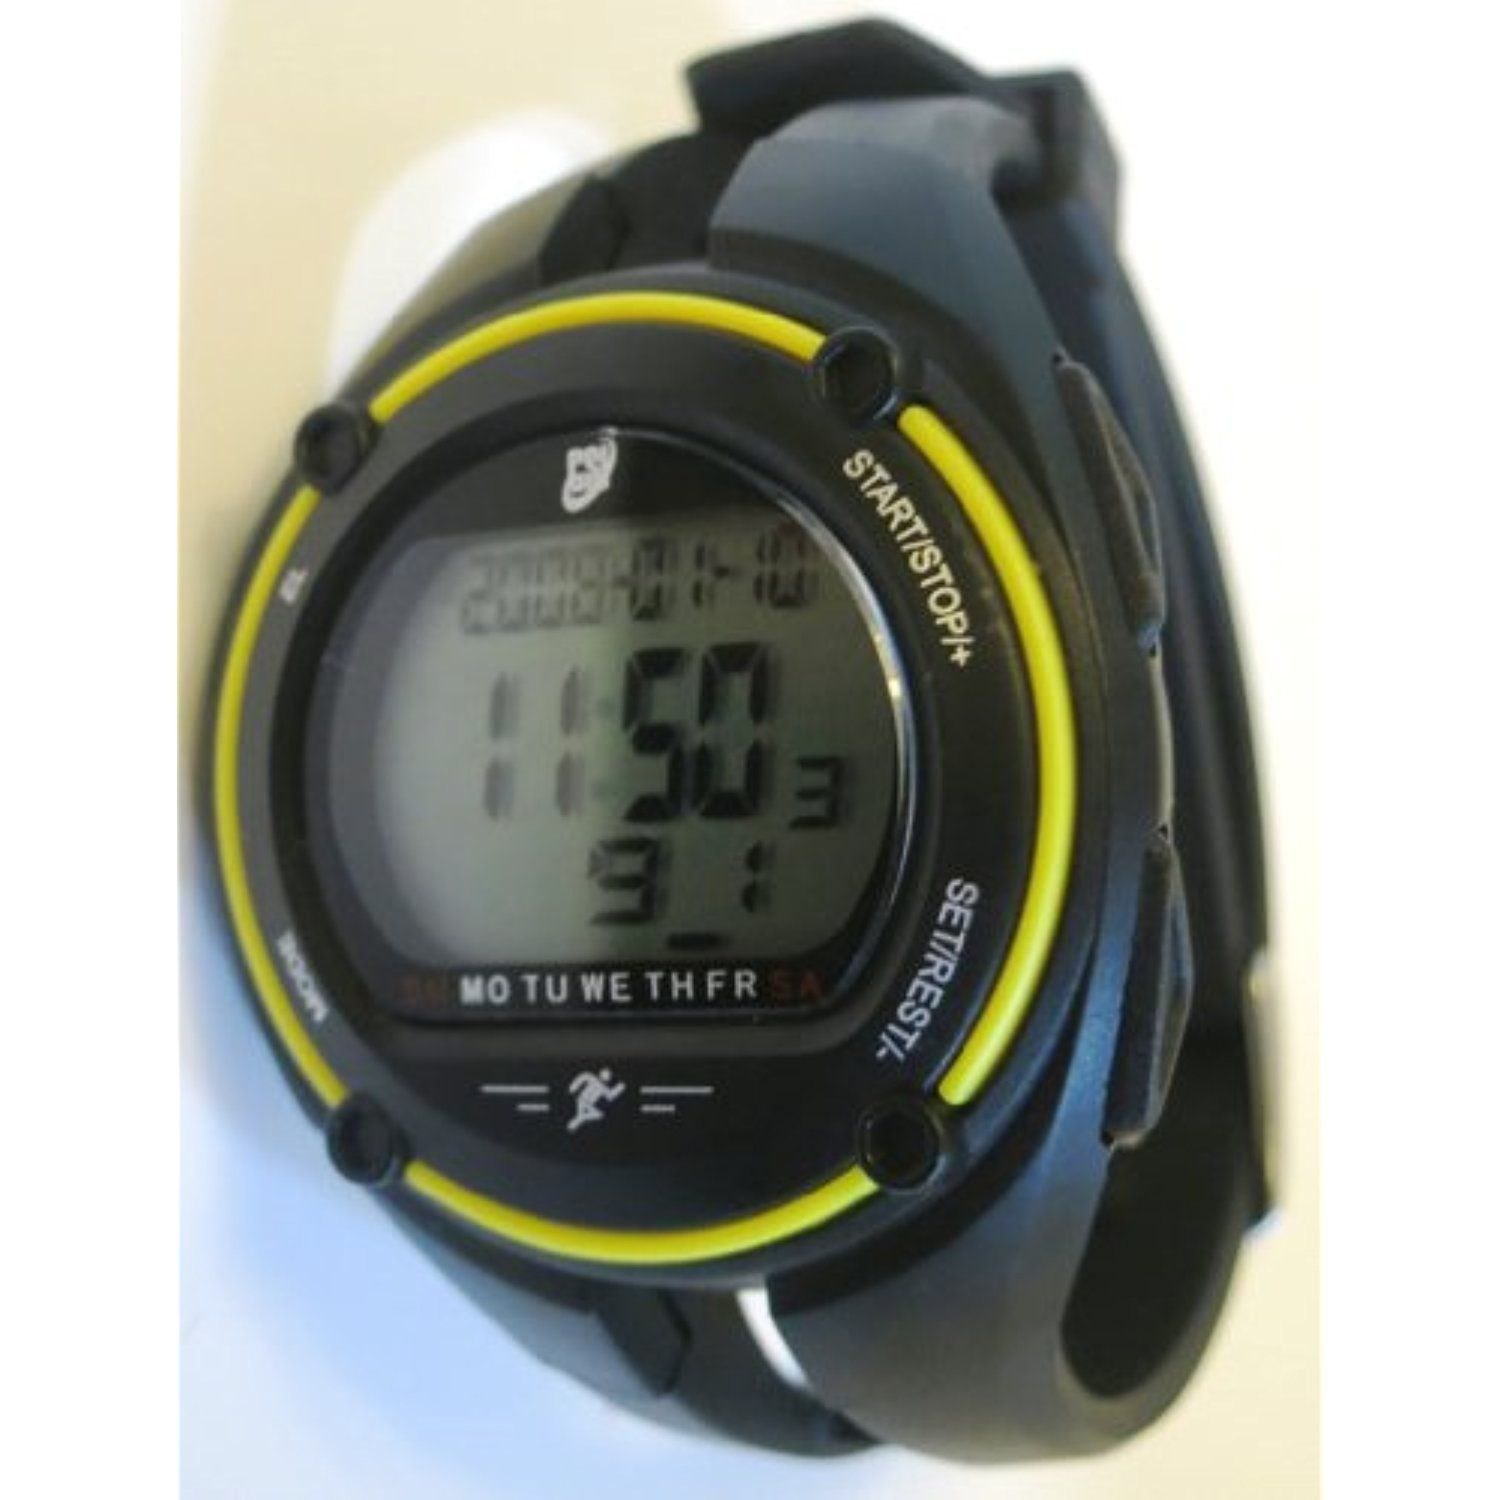 Gsi Super Quality Watch And Heart Rate Monitor And